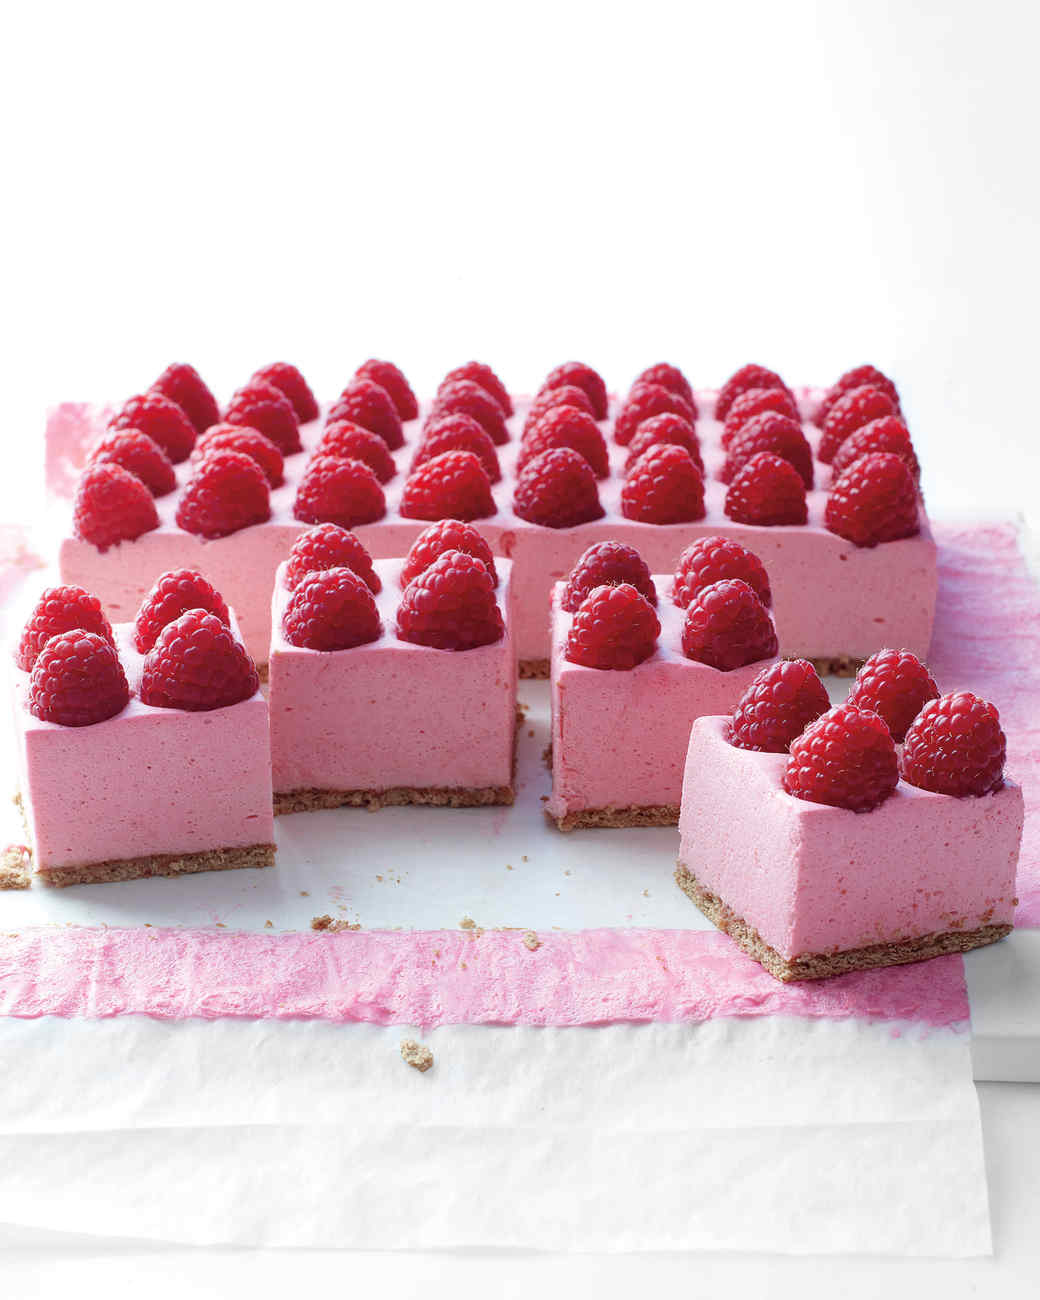 raspberry-mousse-pie-des-0511med106942.jpg